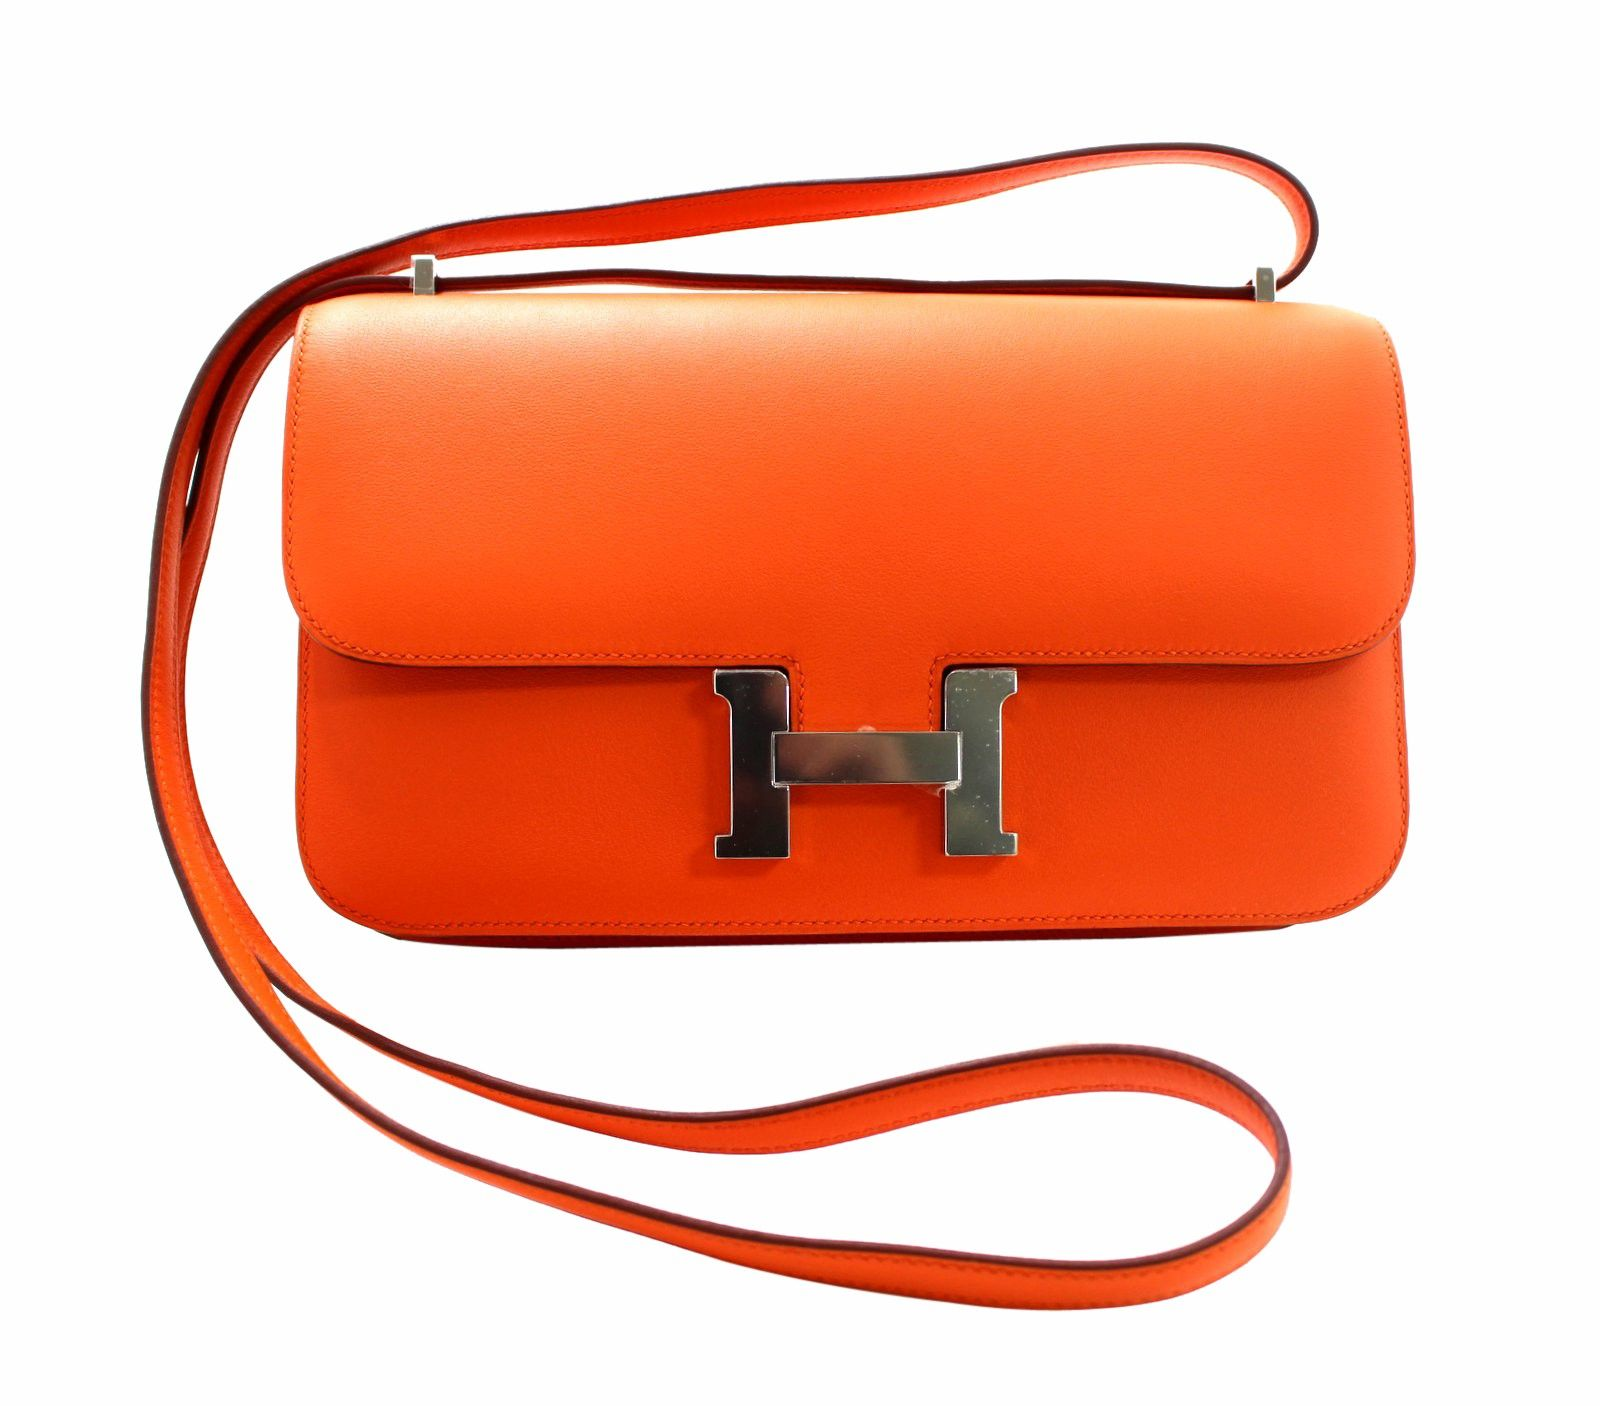 australia hermes constance crocodile smooth bags black people desomorphine  42b0e 79b56  best hermès orange swift leather constance elan a truly  classic ... 564b0742ed555